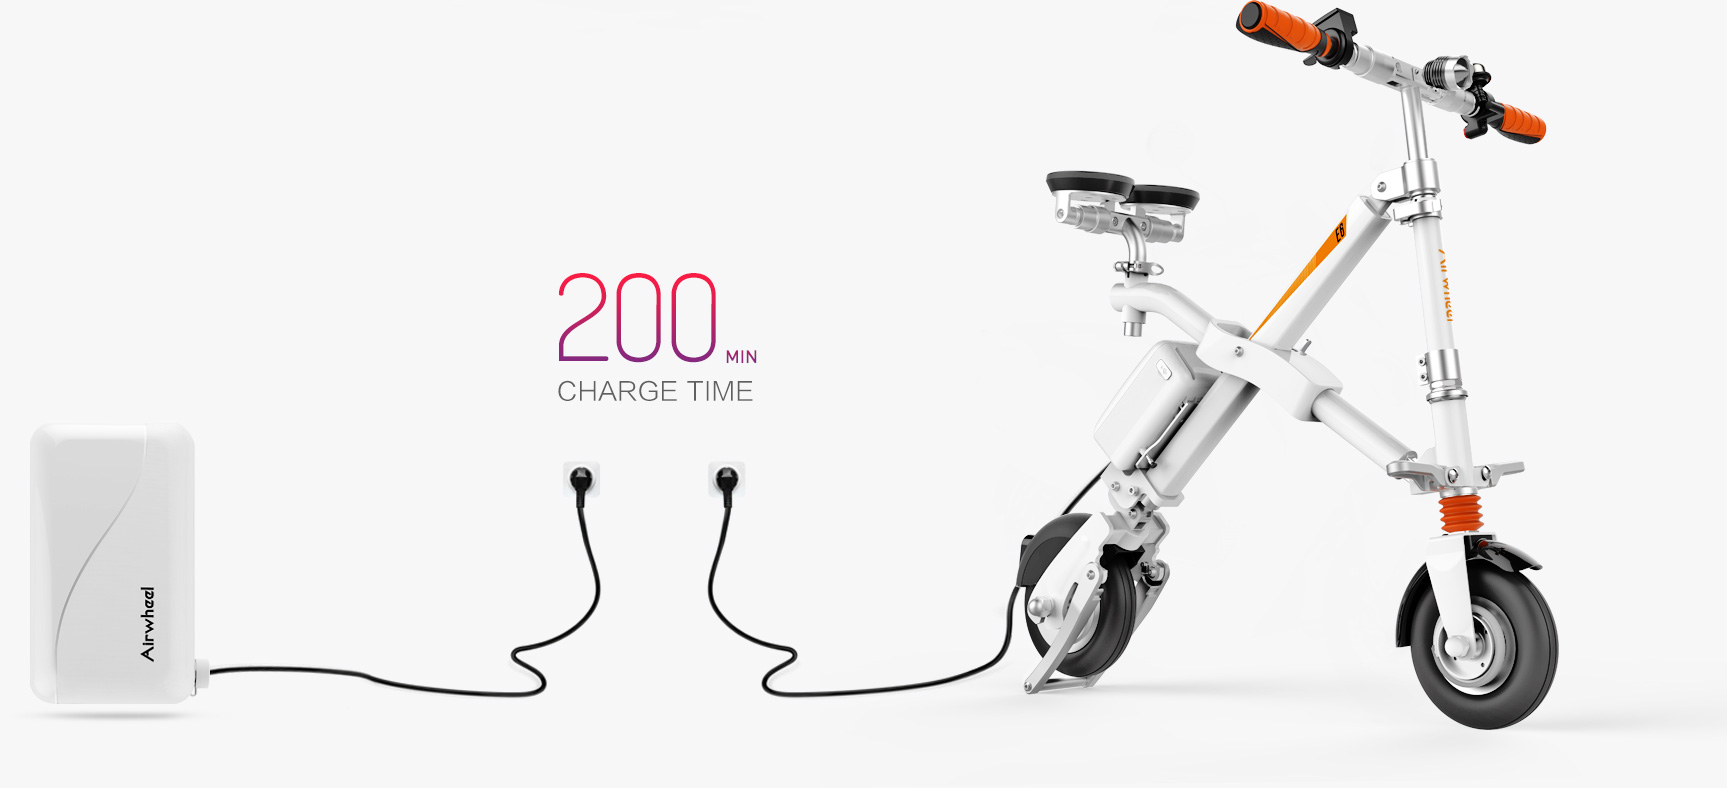 Airwheel E6 smart ebike for sale